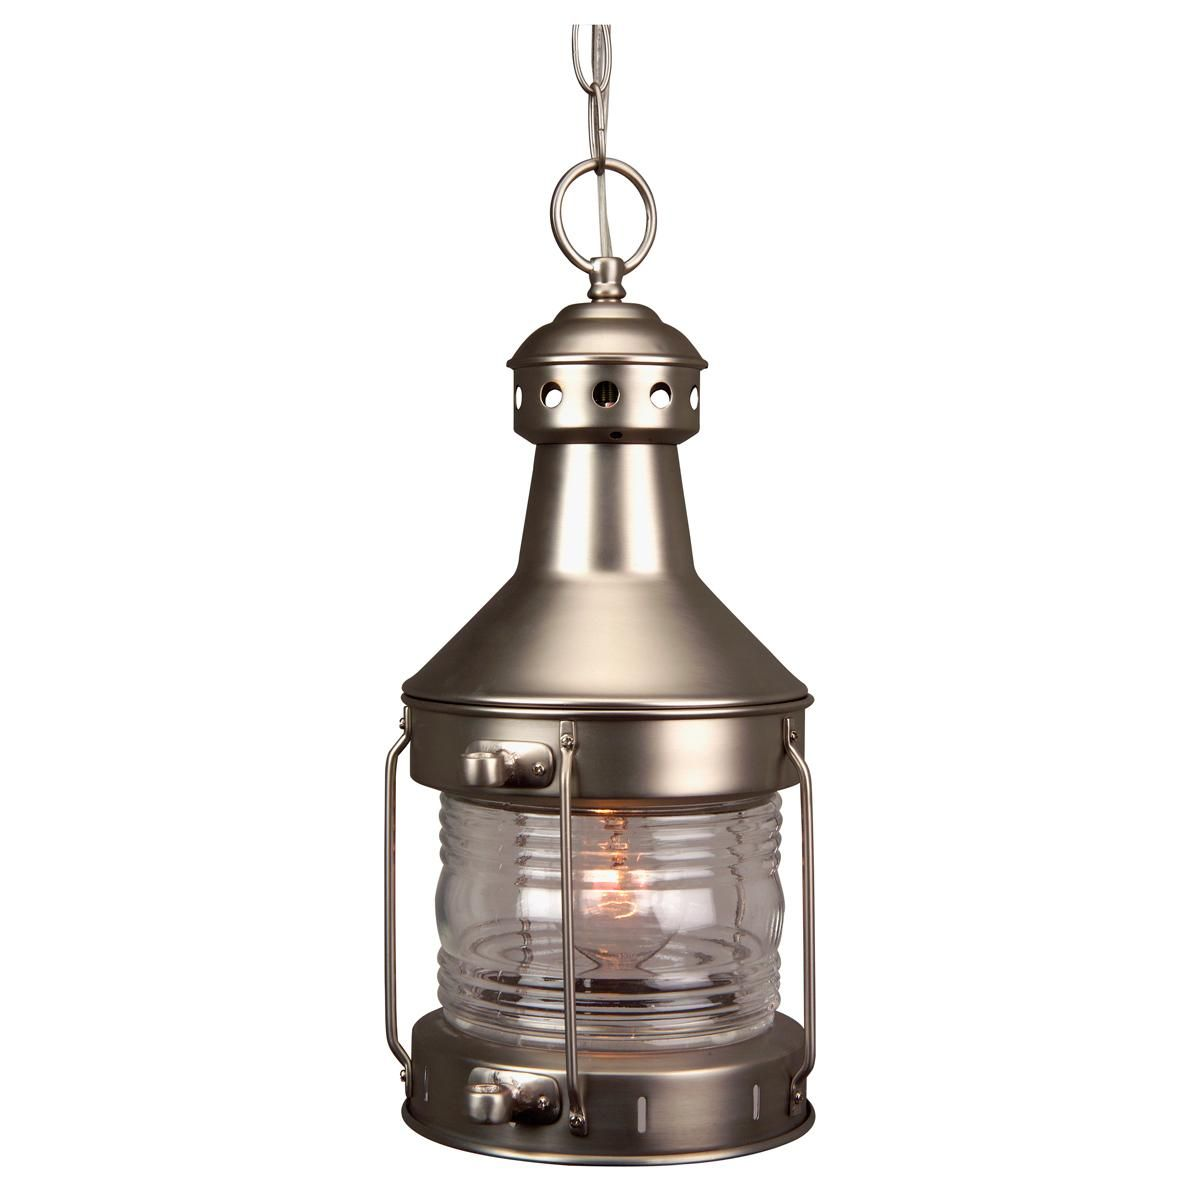 Rustic Nautical Outdoor Pendant Light The Eclectic Design Of This Outdoor  Collection Will Work Well In